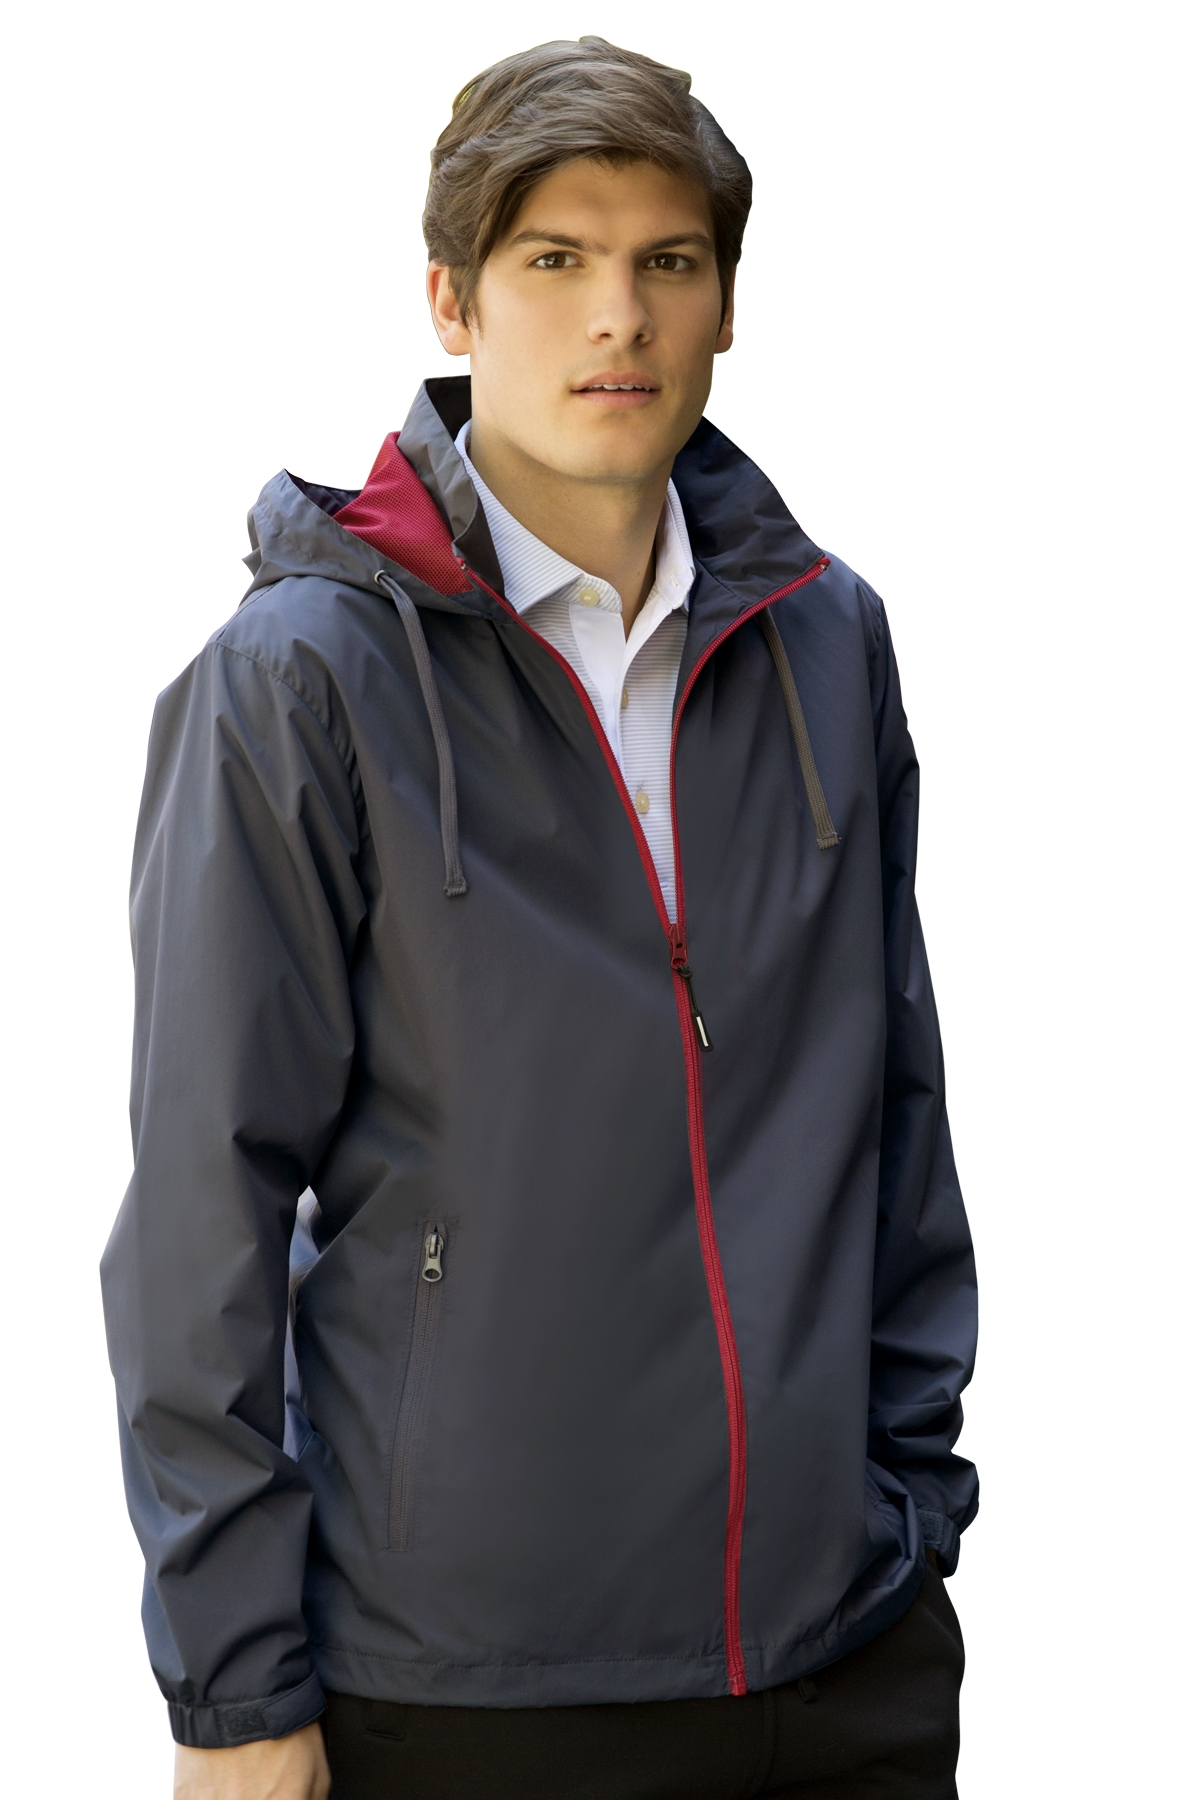 Vantage 7162 - Men's Club Jacket